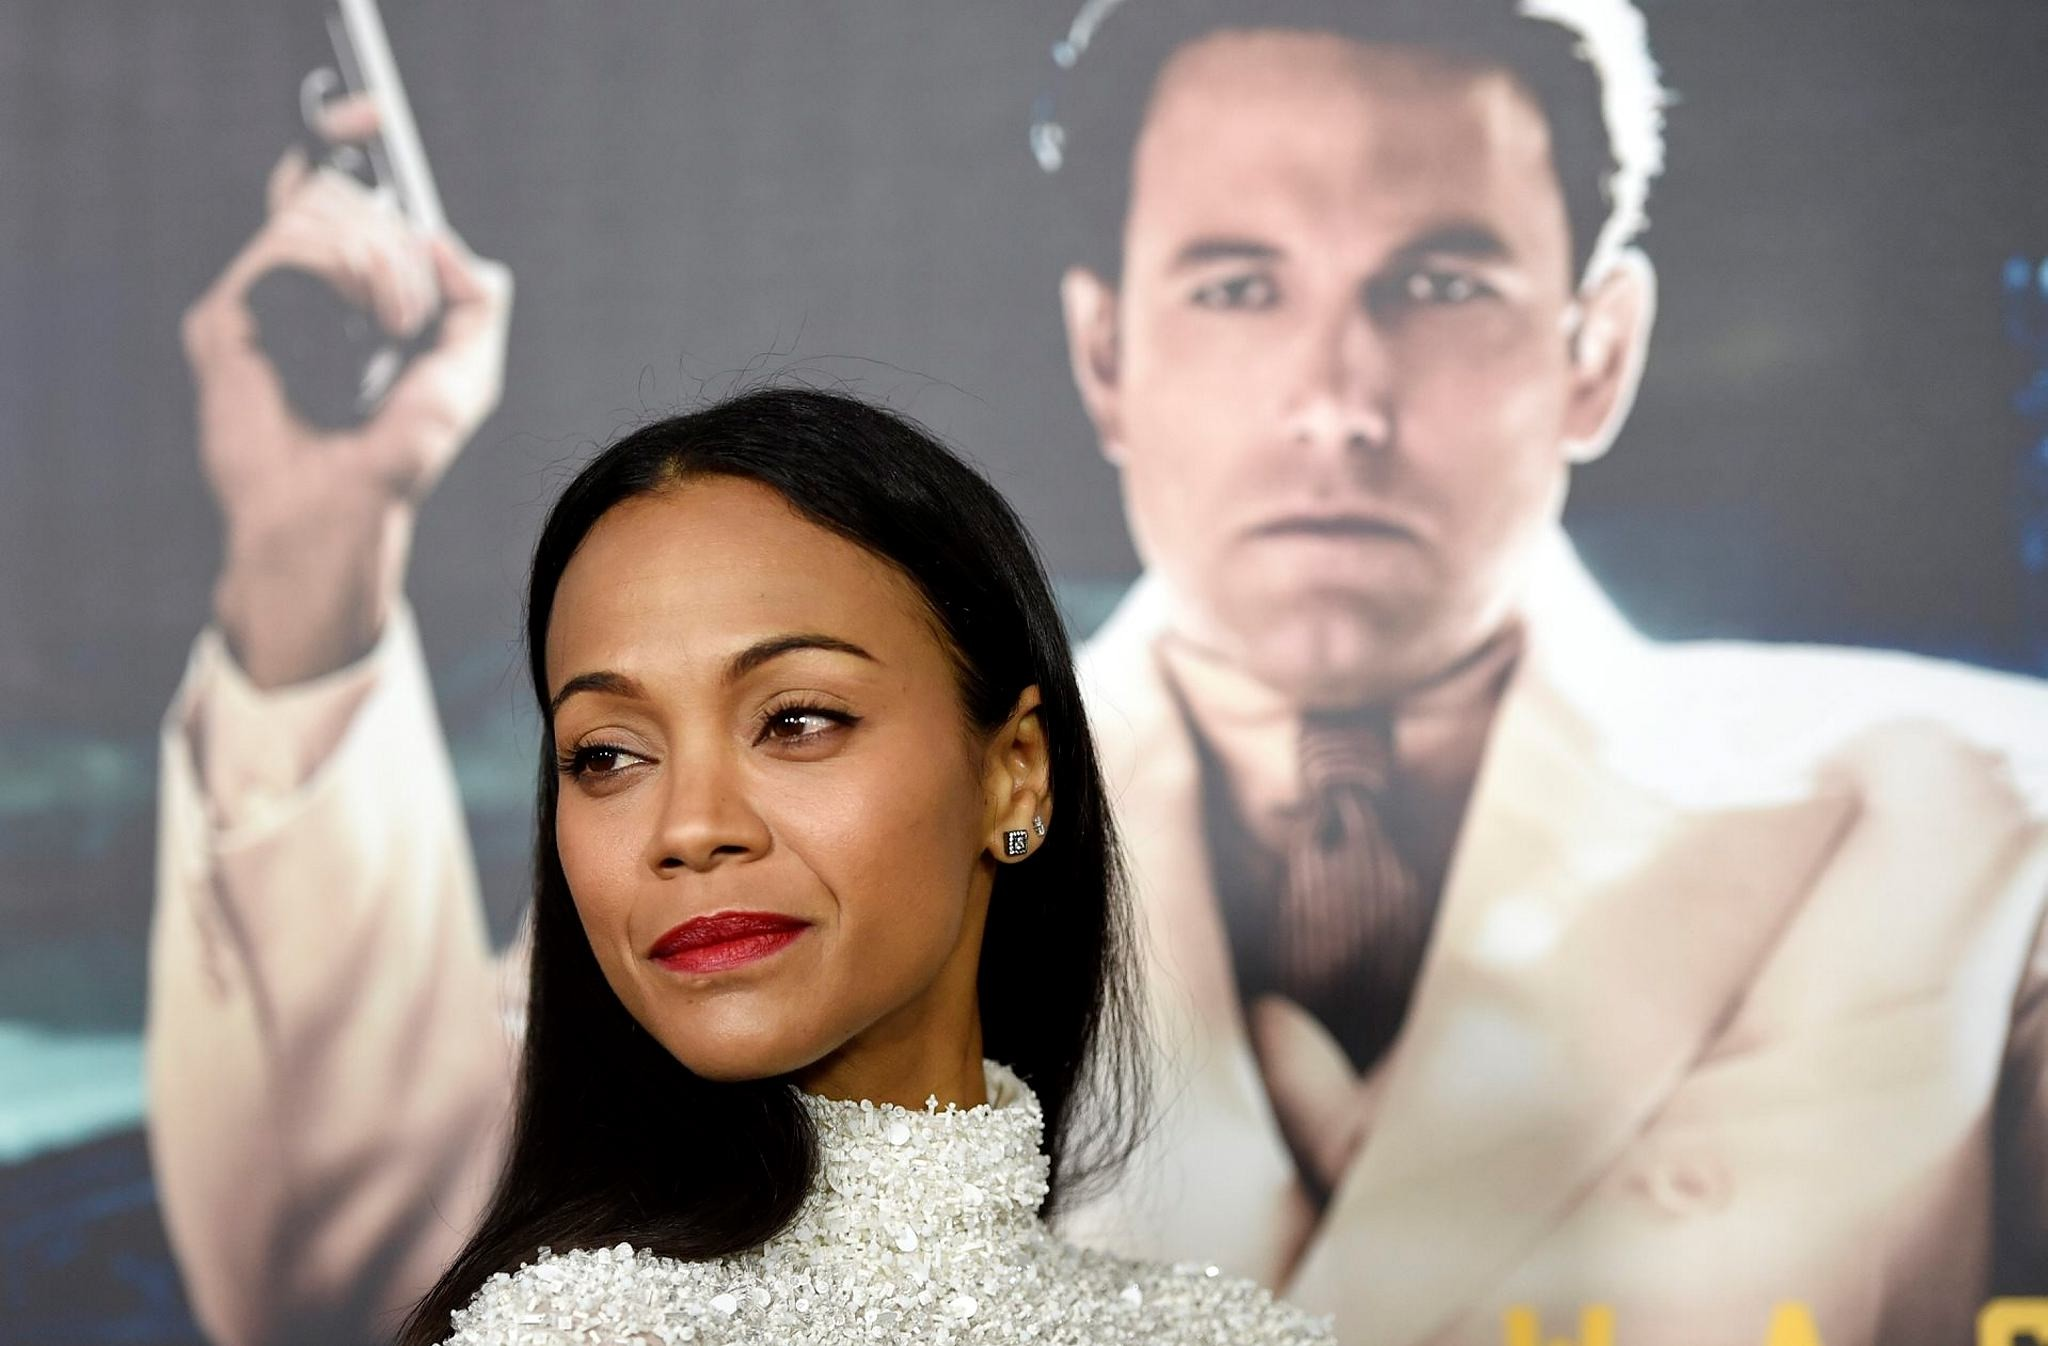 Zoe Saldana, a cast member in ,Live by Night,, poses at the premiere of the film at the TCL Chinese Theatre on Monday, Jan. 9, 2017 in Los Angeles. (AP Photo)